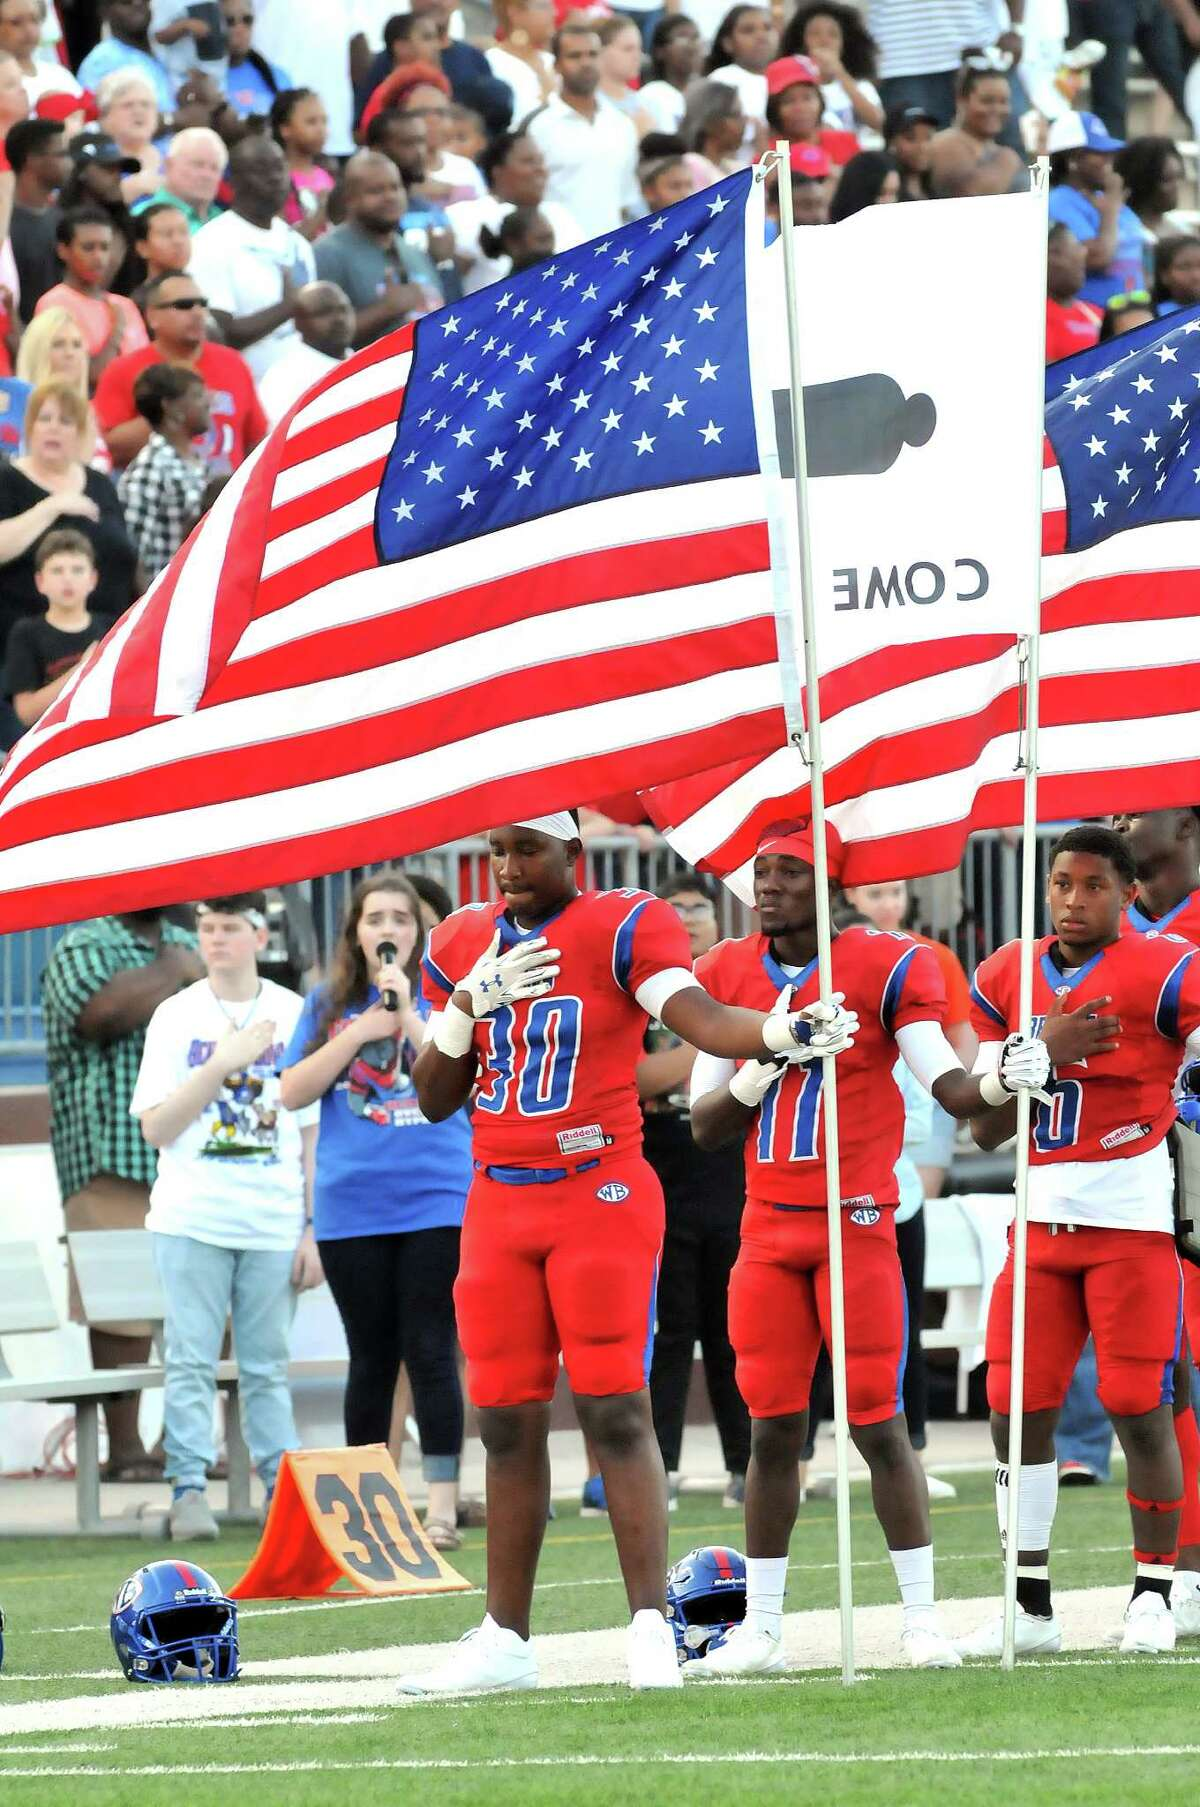 Members of the West Brook Bruins stand on Sept. 2 with their hands over their hearts, as several hold the American Flag as the national anthem is played prior to their Week 2 game against the Ozen Panthers at the Thomas Center in Beaumont. (Mike Tobias/The Enterprise)